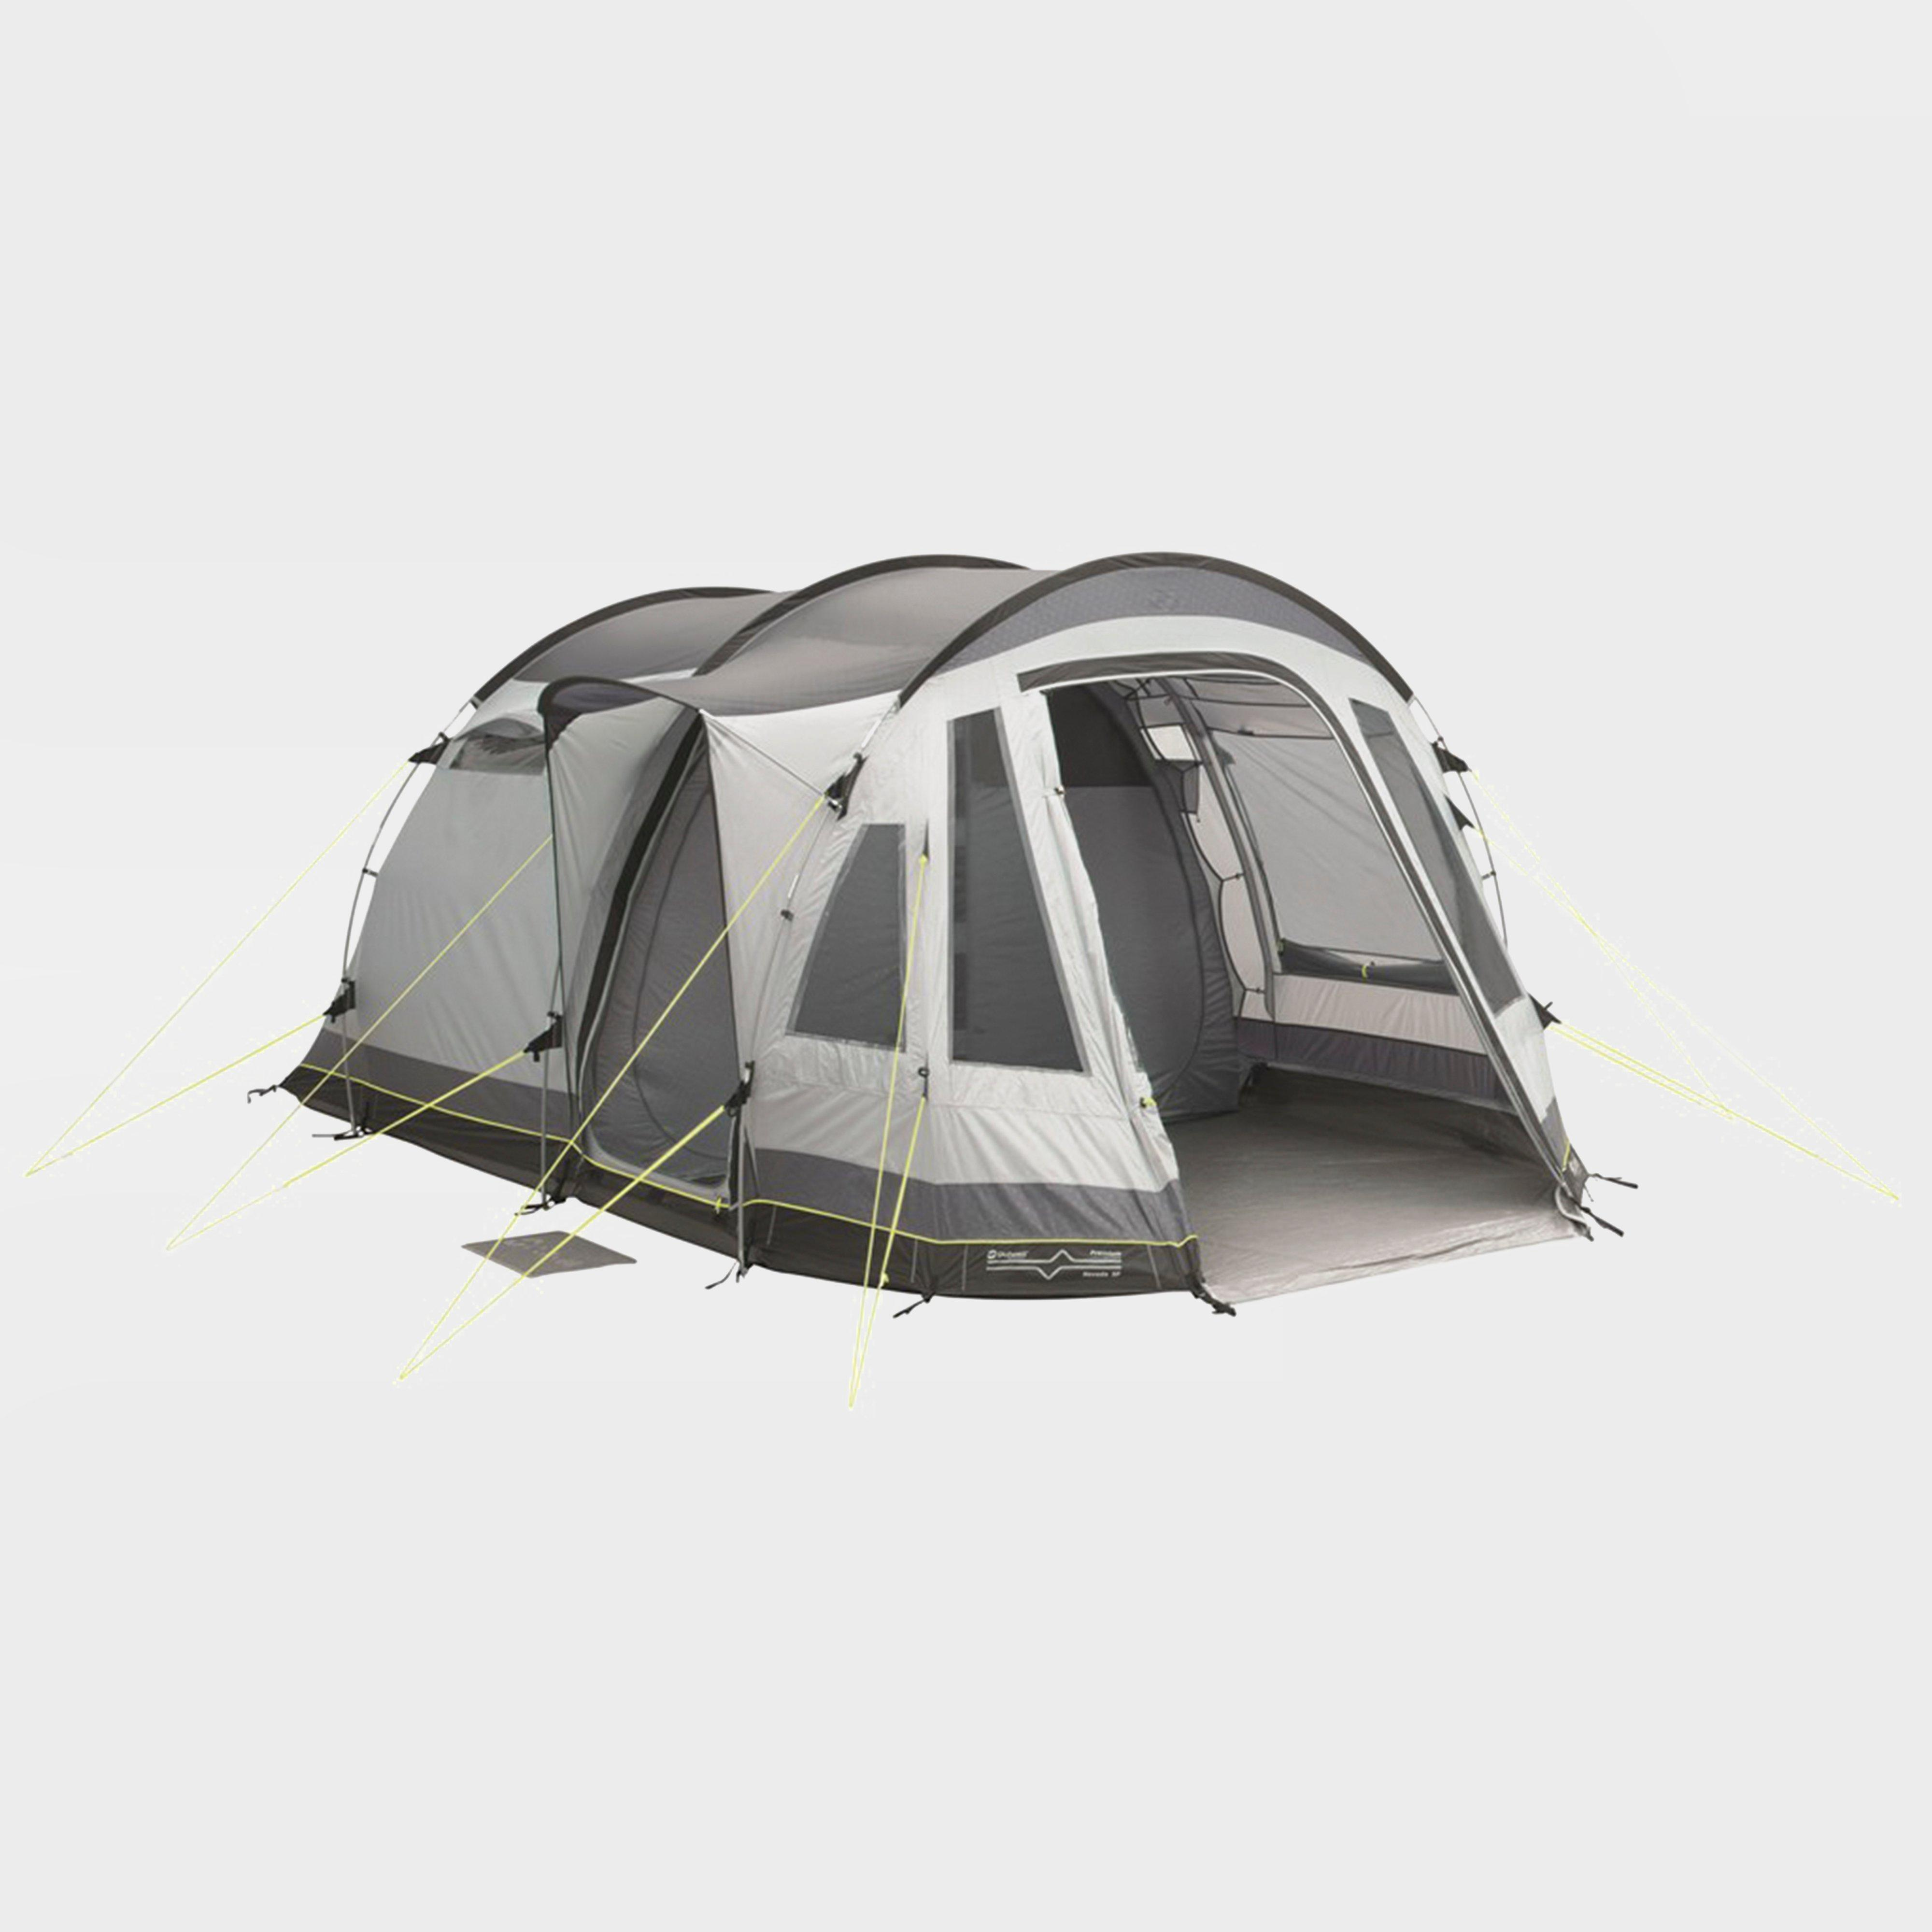 OUTWELL Nevada SP Tent & Outwell Family Festival u0026 Pop Up Tents | Blacks